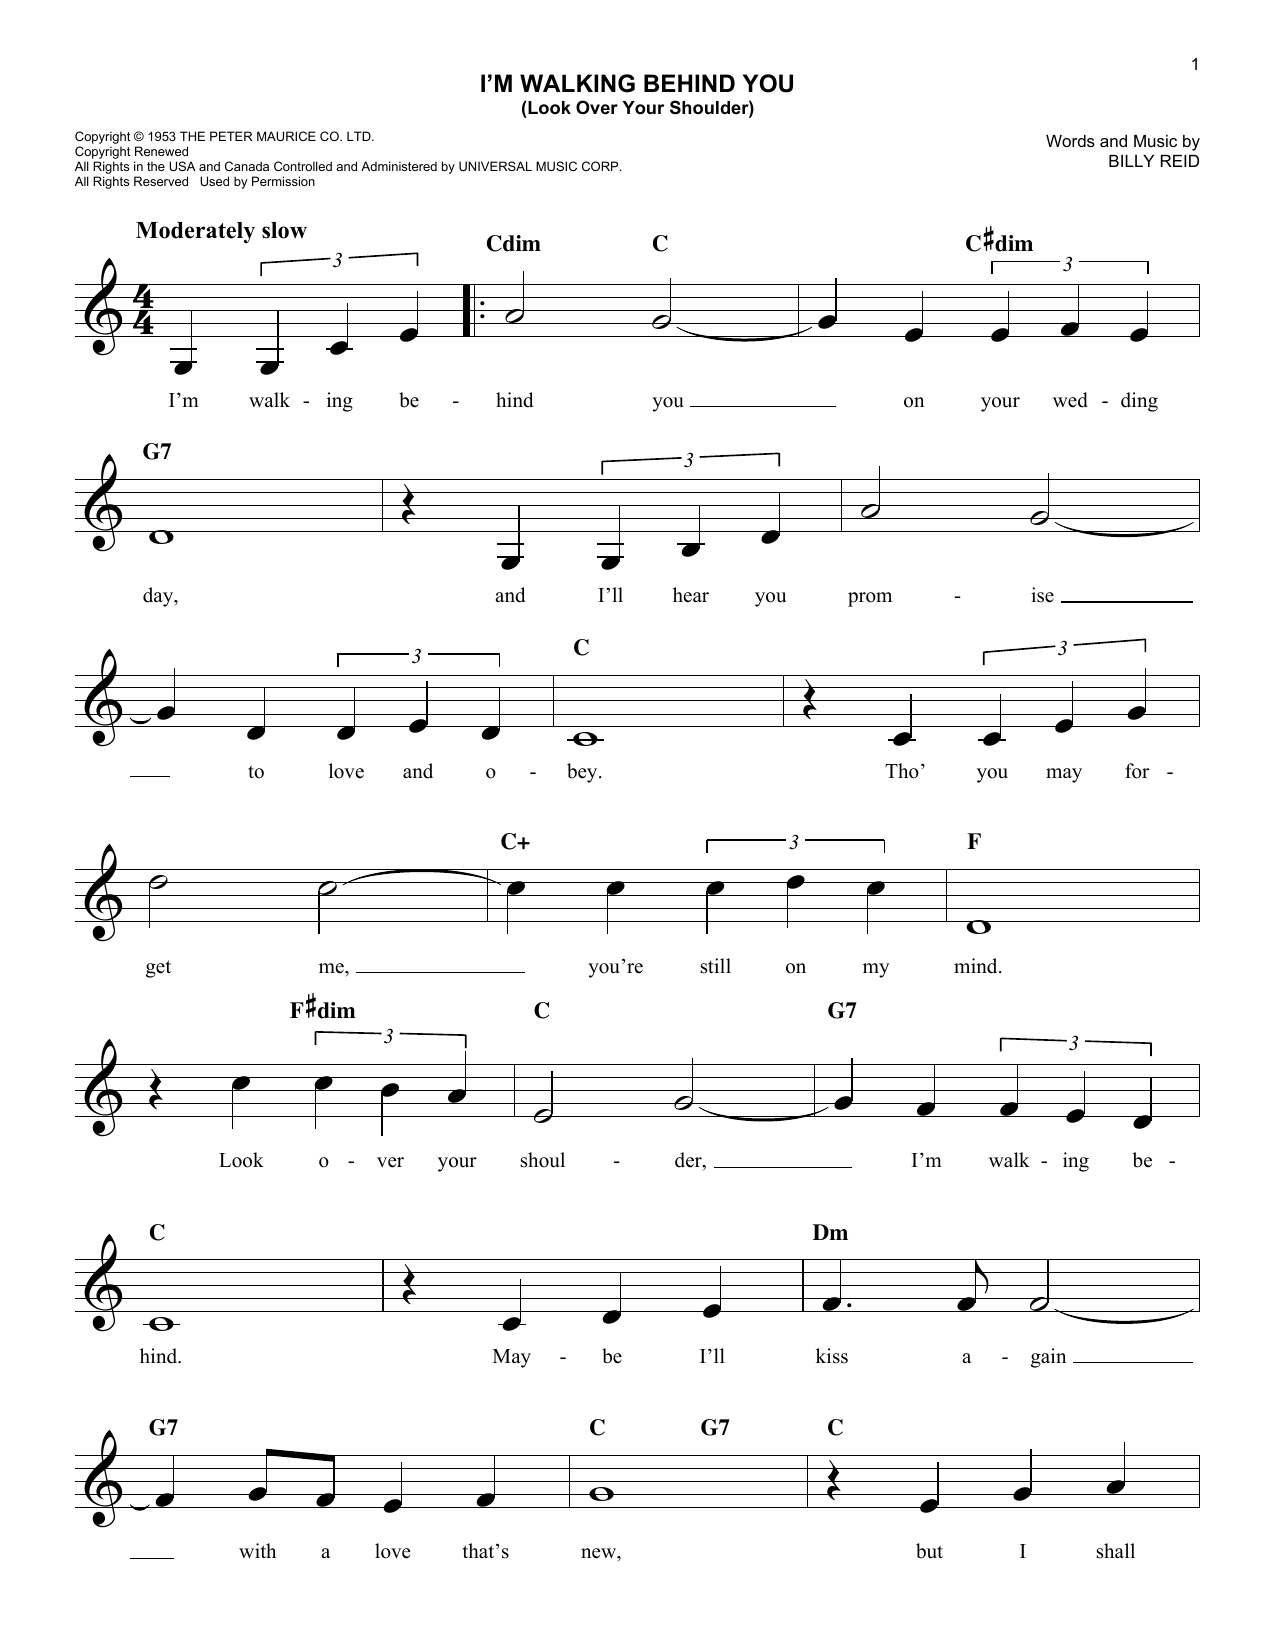 Billy Reid I'm Walking Behind You (Look Over Your Shoulder) sheet music notes and chords. Download Printable PDF.